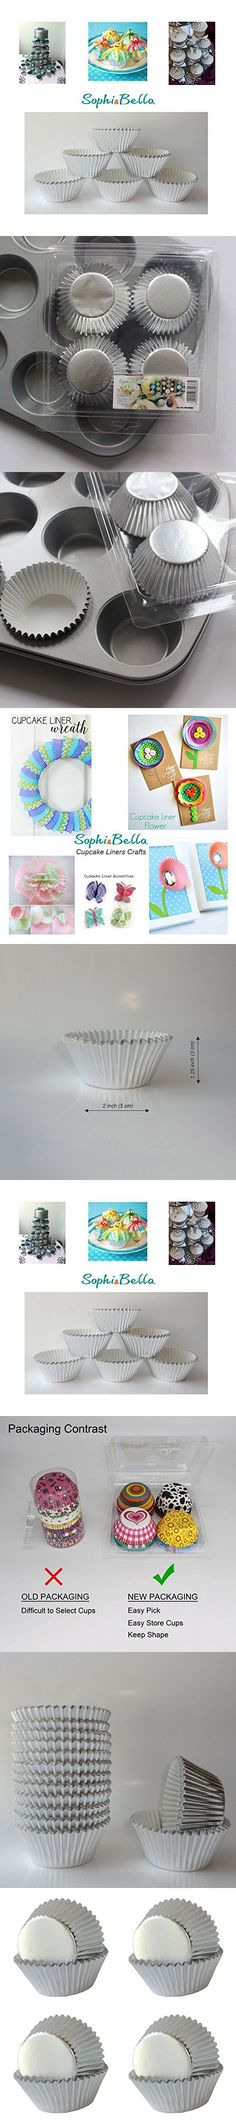 SophieBella Silver-Foil Cupcake-Liners Paper-Baking-Cups for pcs,Regular Size